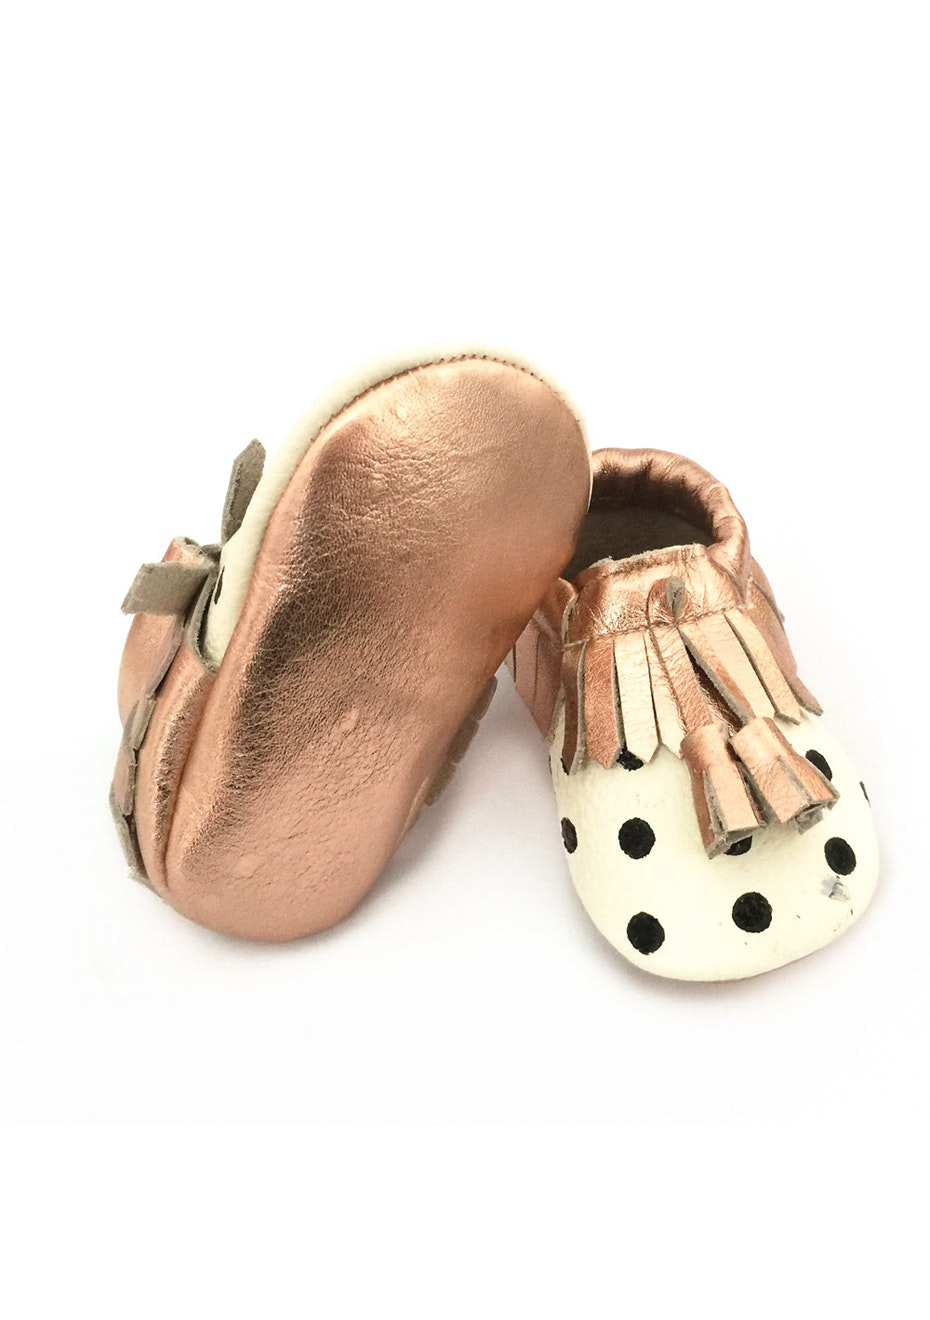 Baby  Leather Shoes - Cream / Black Polka Dot / Rose Gold